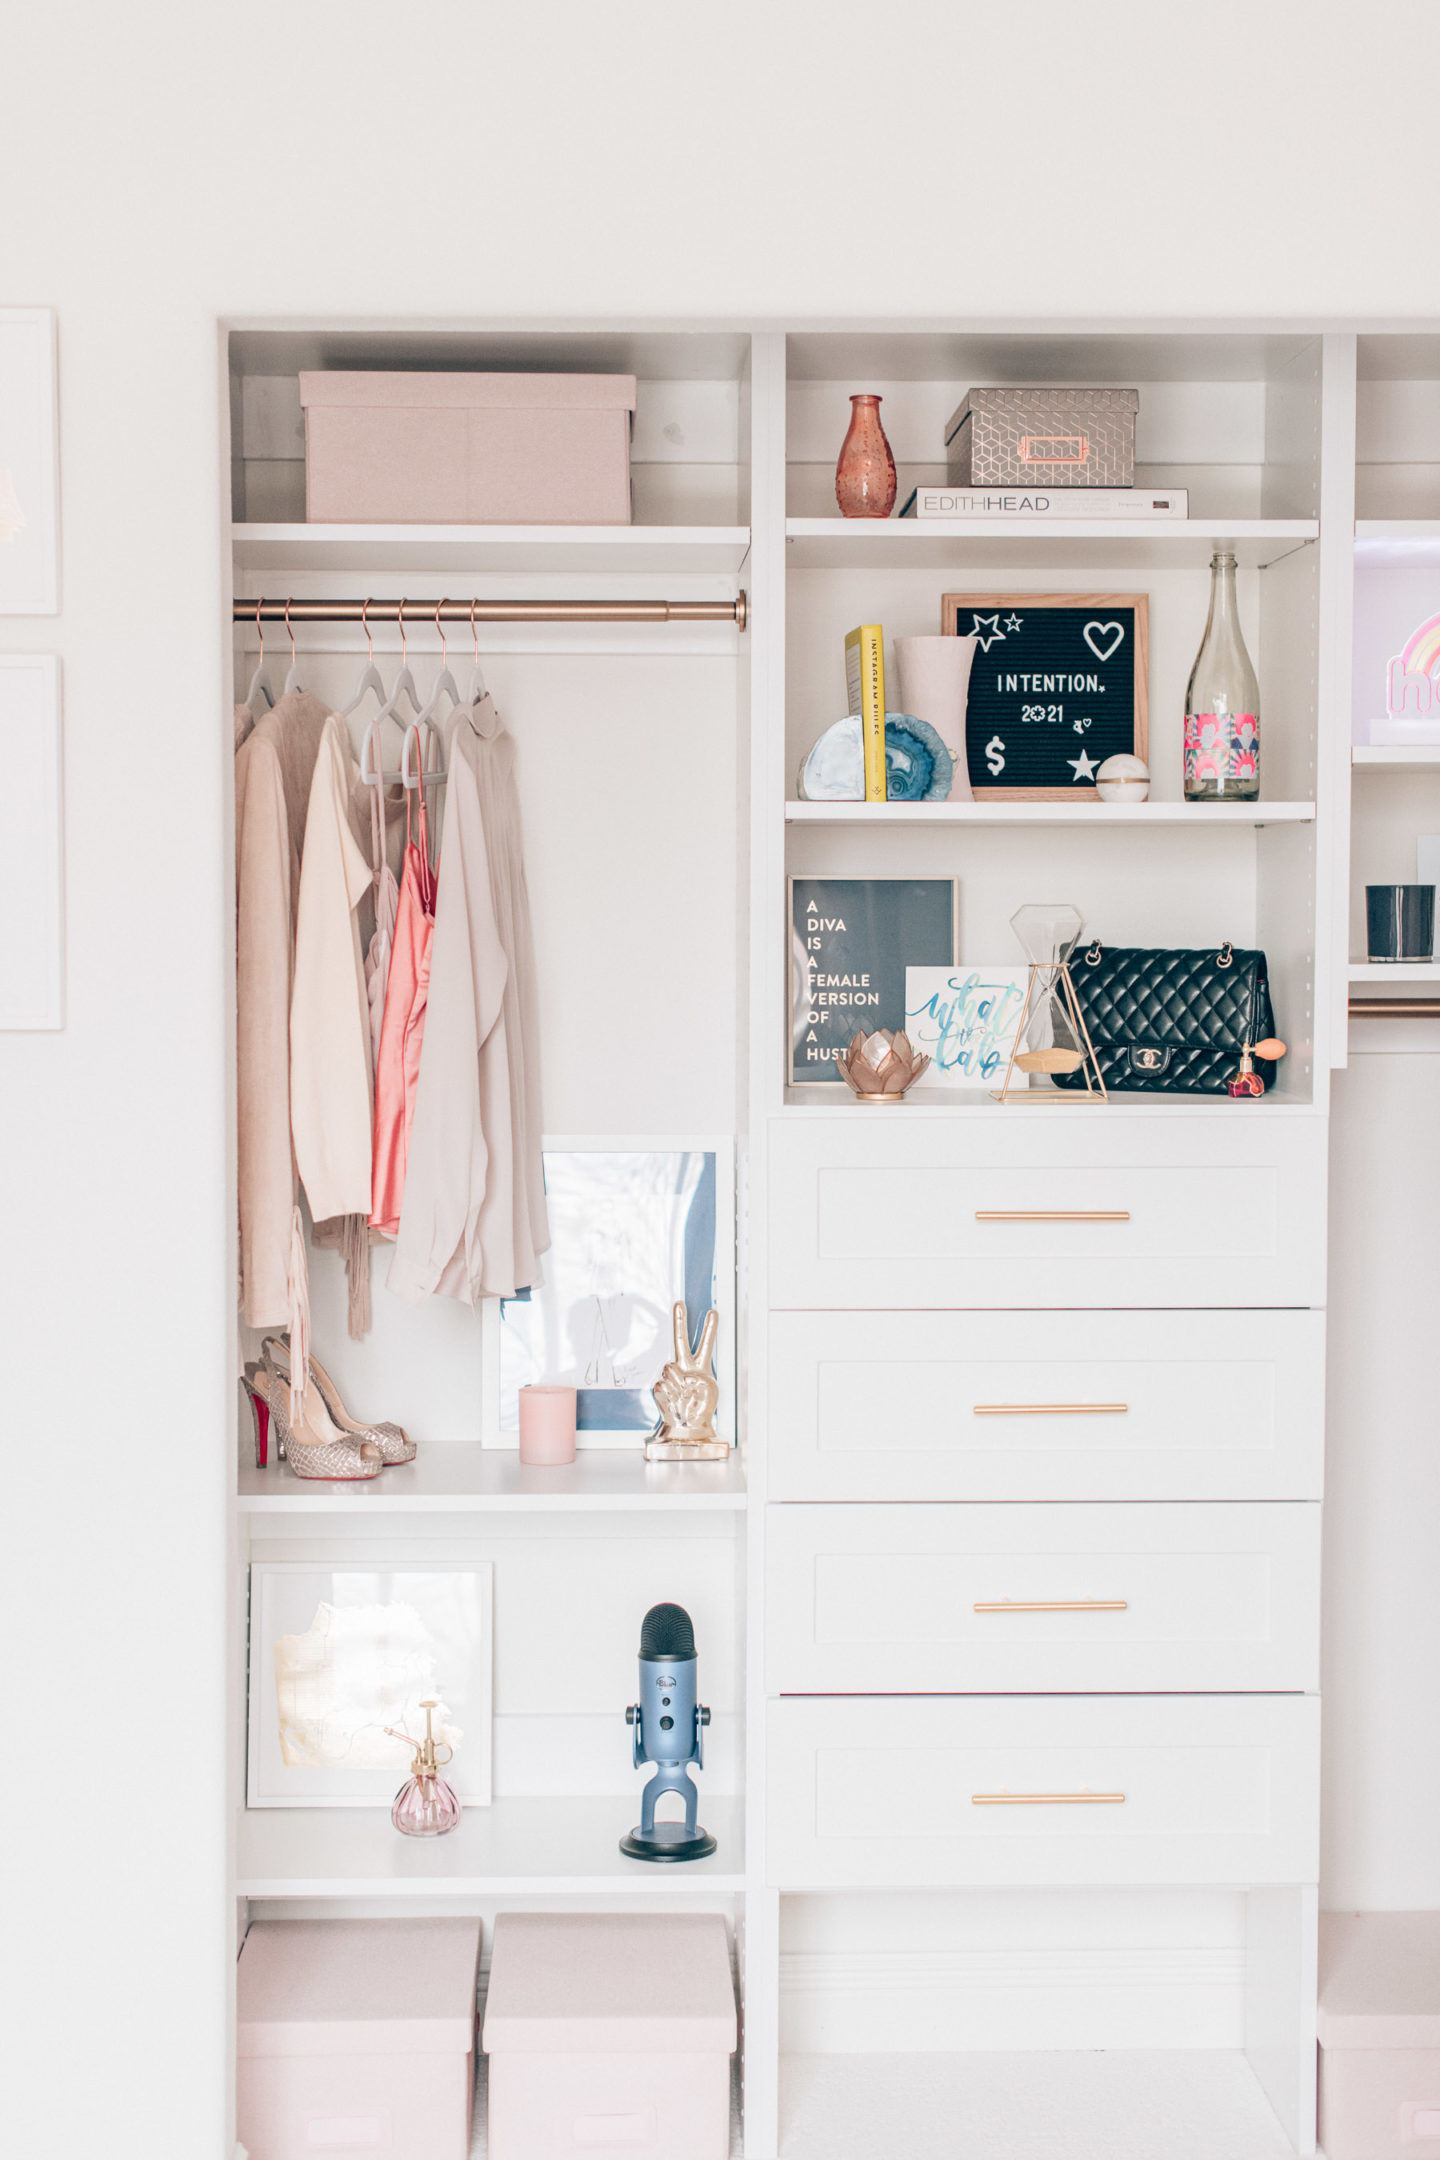 Modular closets cloffice design, by lifestyle blogger What The Fab